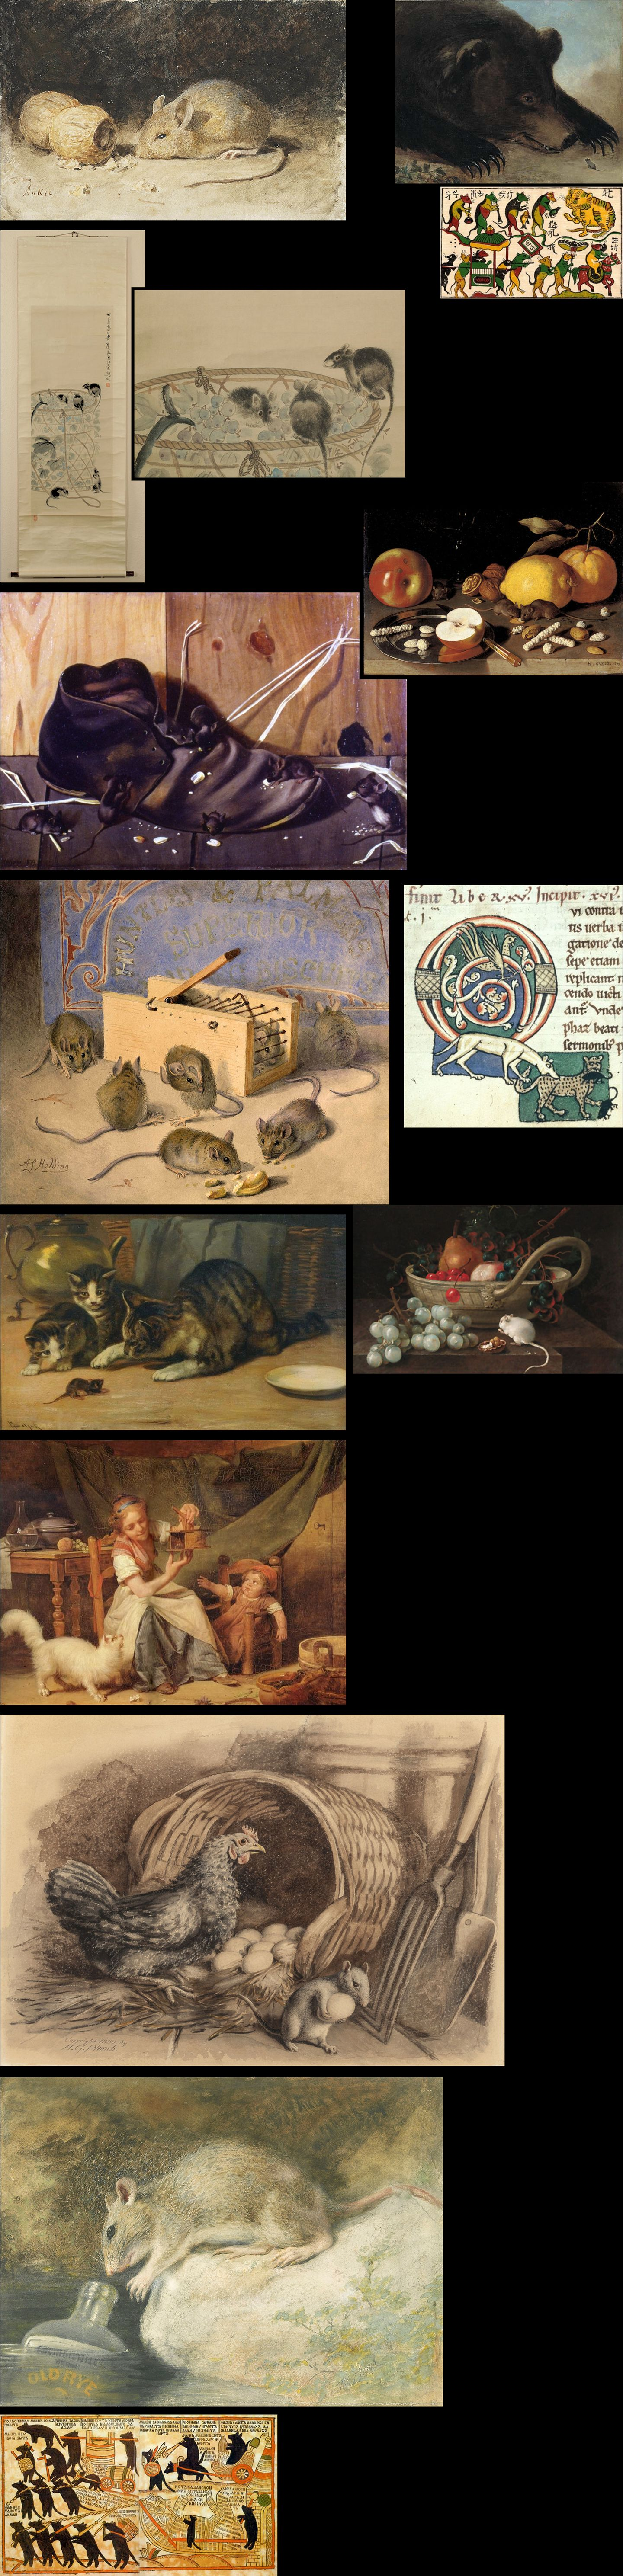 Gallery of Mouse Art on Forbidden Mouse City